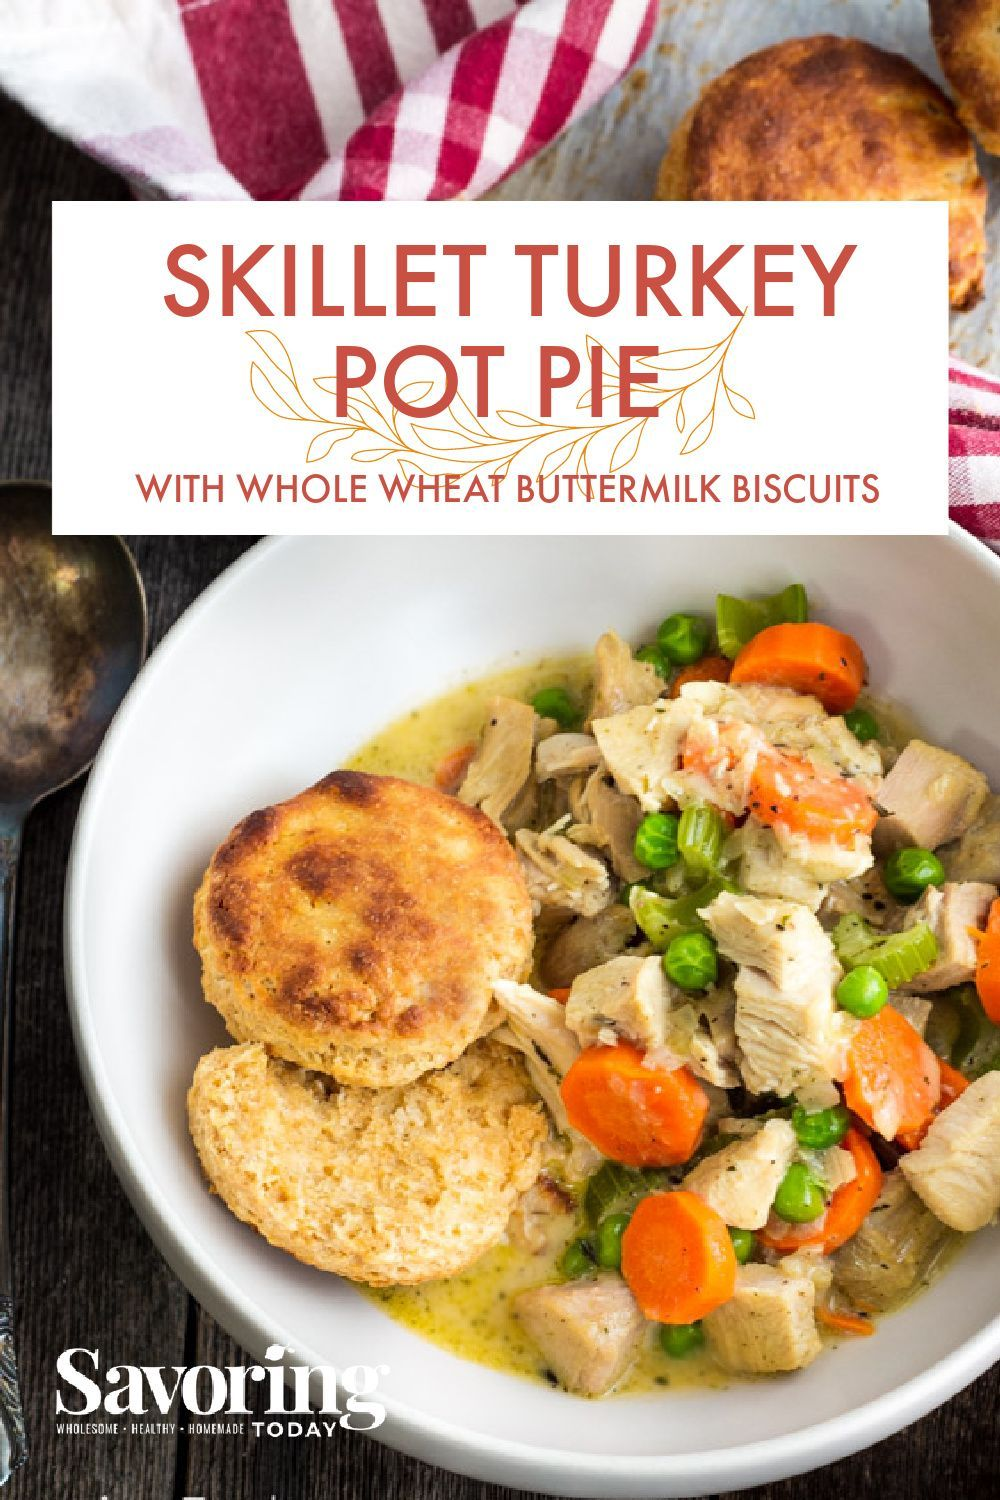 Skillet Turkey Pot Pie With Buttermilk Biscuits In 2020 Healthy Dinner Recipes Turkey Pot Pie Turkey Pot